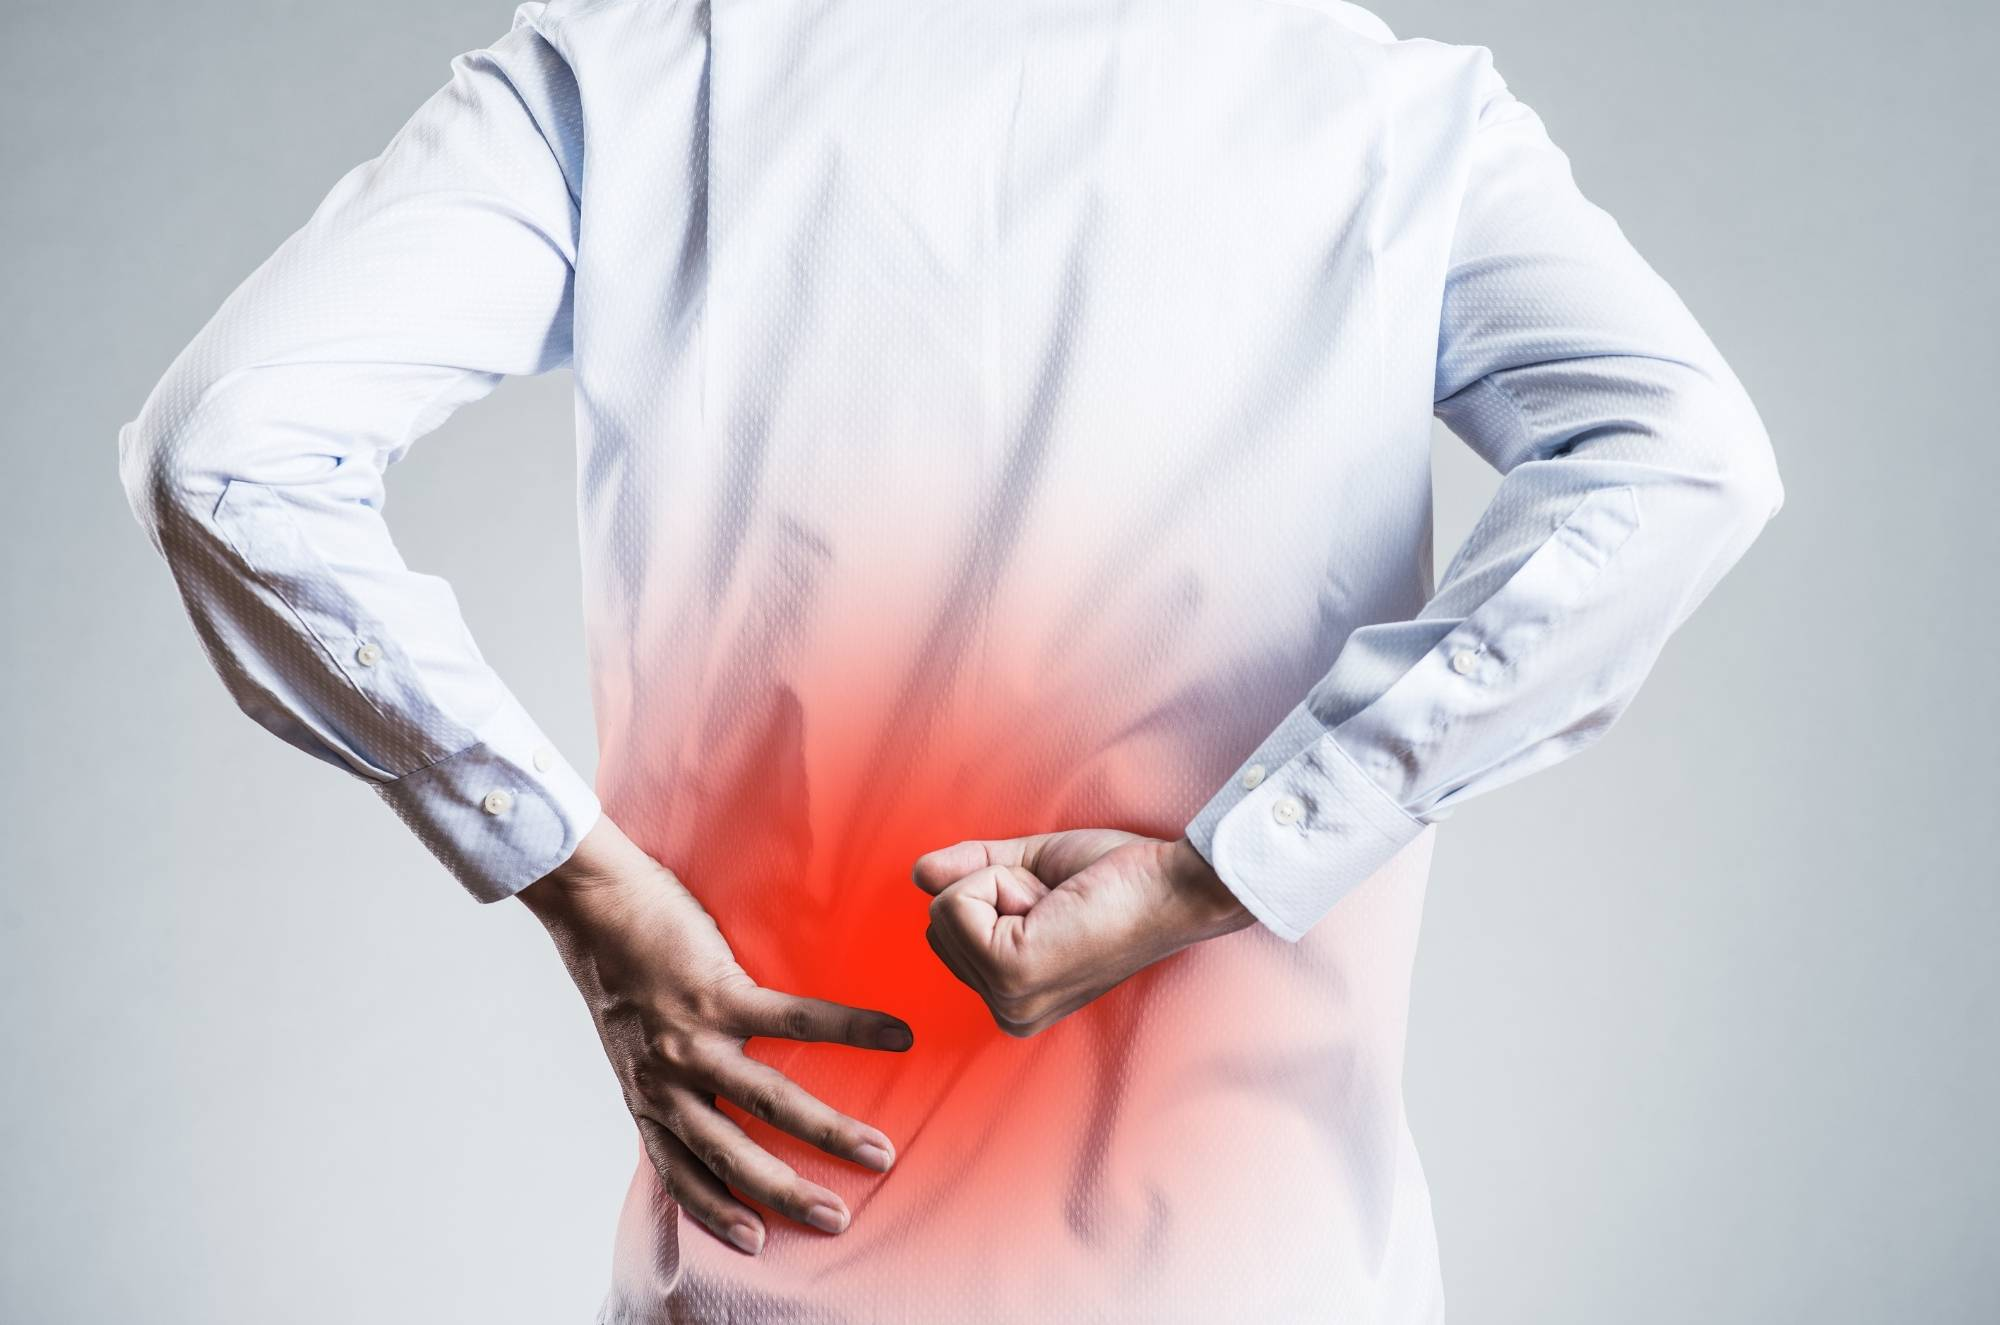 man experiencing low back pain